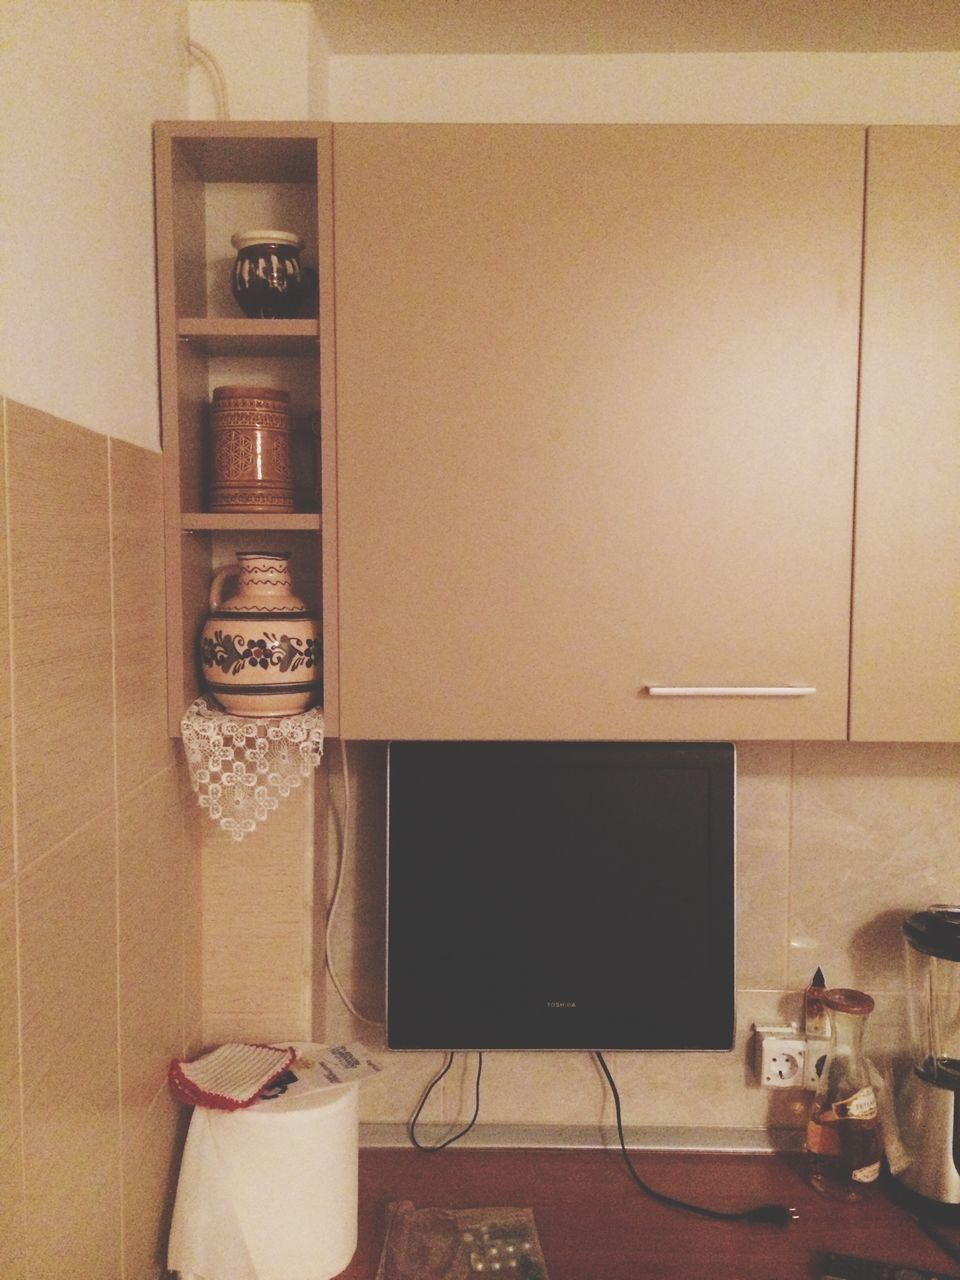 indoors, no people, home interior, cabinet, table, technology, home showcase interior, domestic room, architecture, day